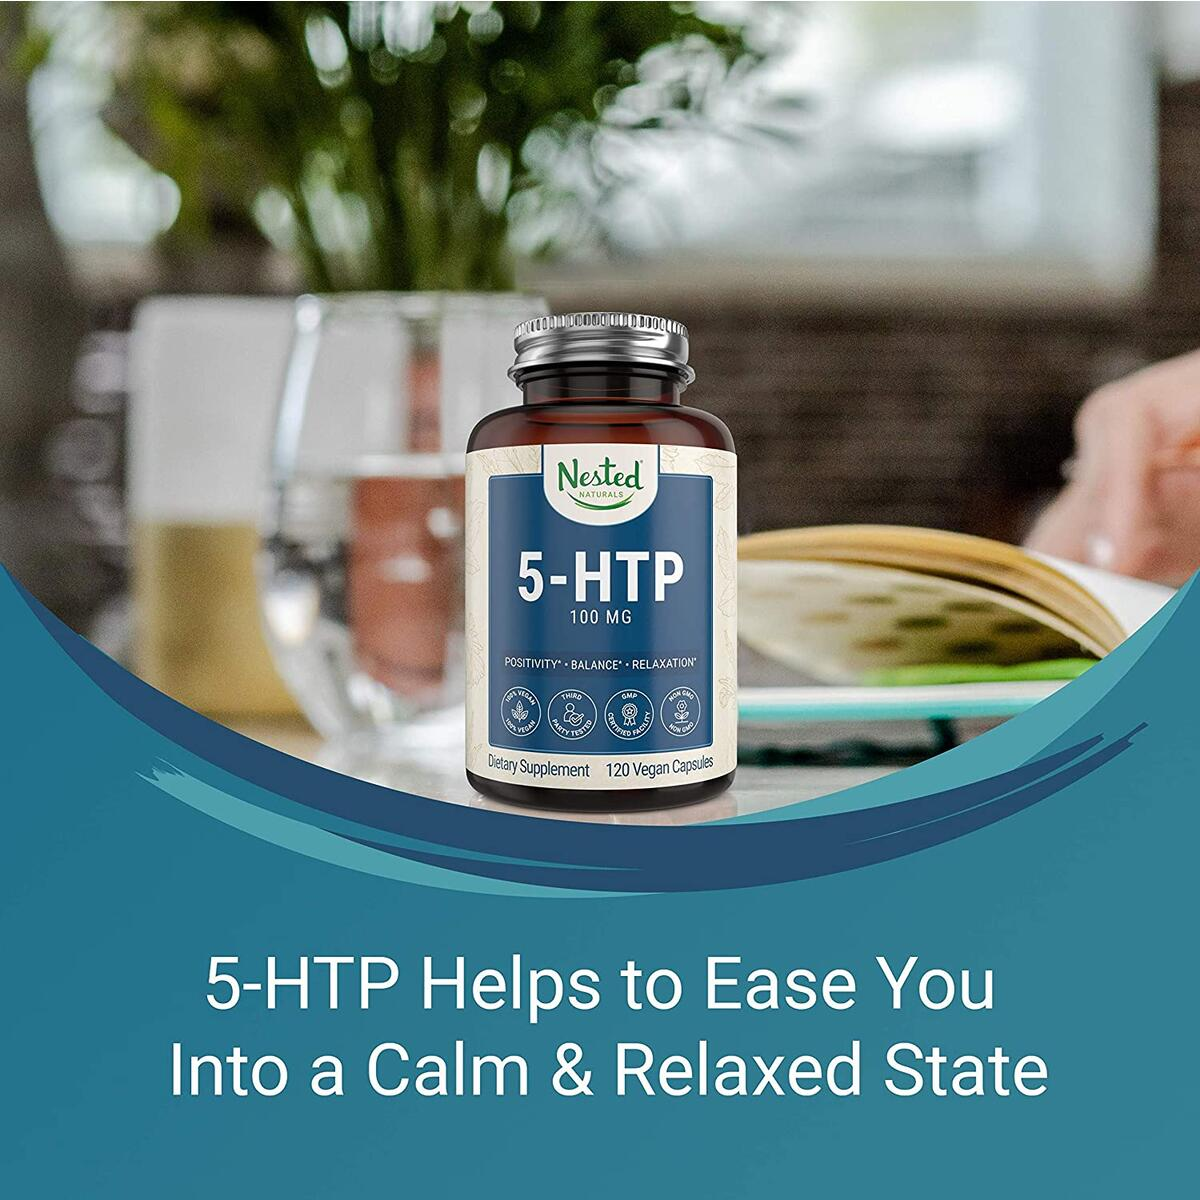 Nested Naturals 5-HTP 100mg | Sleep, Relaxation, Mood Support | Naturally Sourced Serotonin Booster